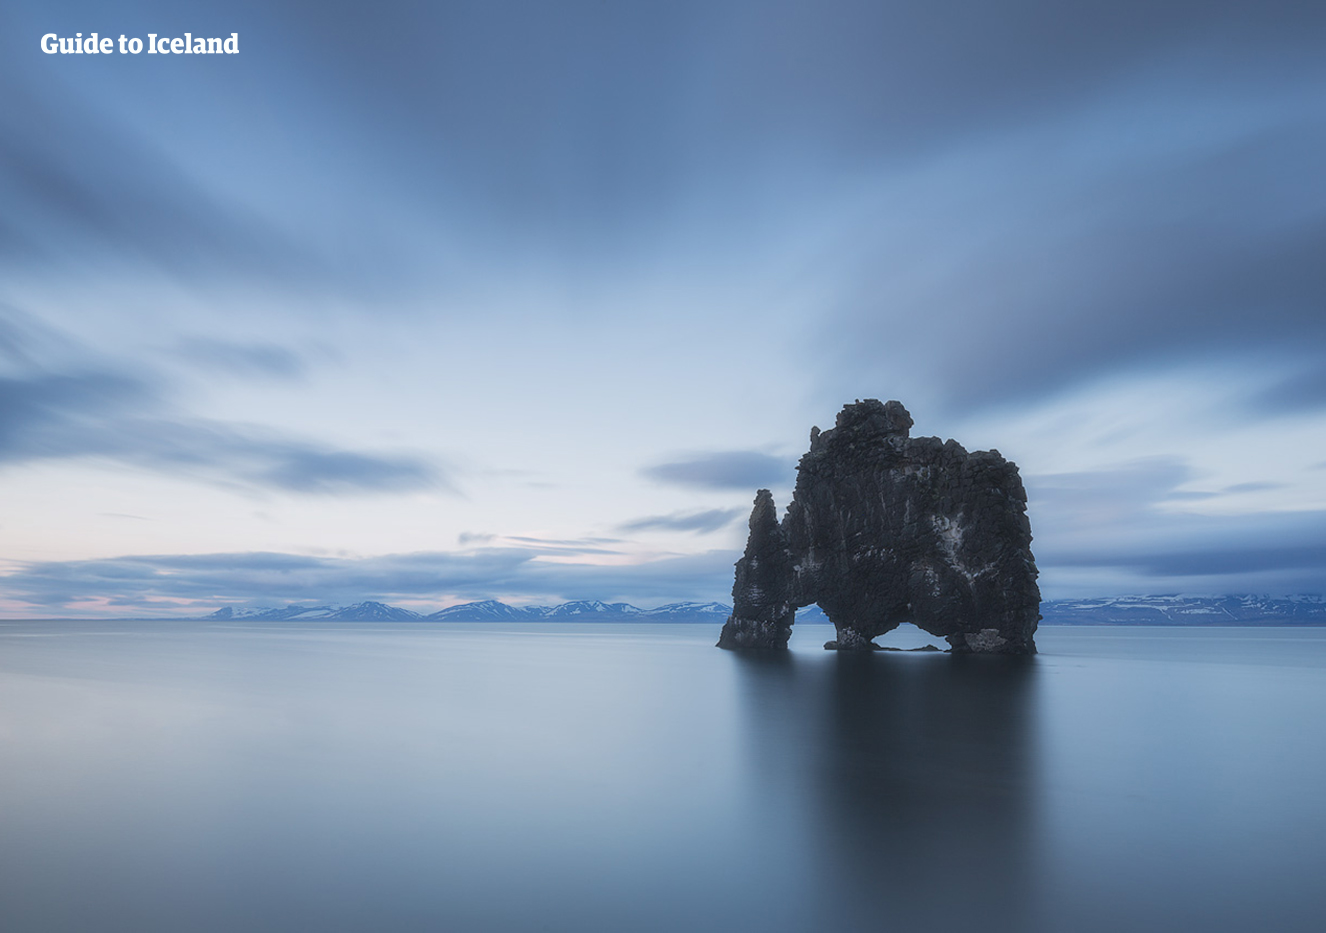 12 Day Summer Package | Guided tour of the Complete Circle of Iceland & Snaefellsnes Peninsula - day 8